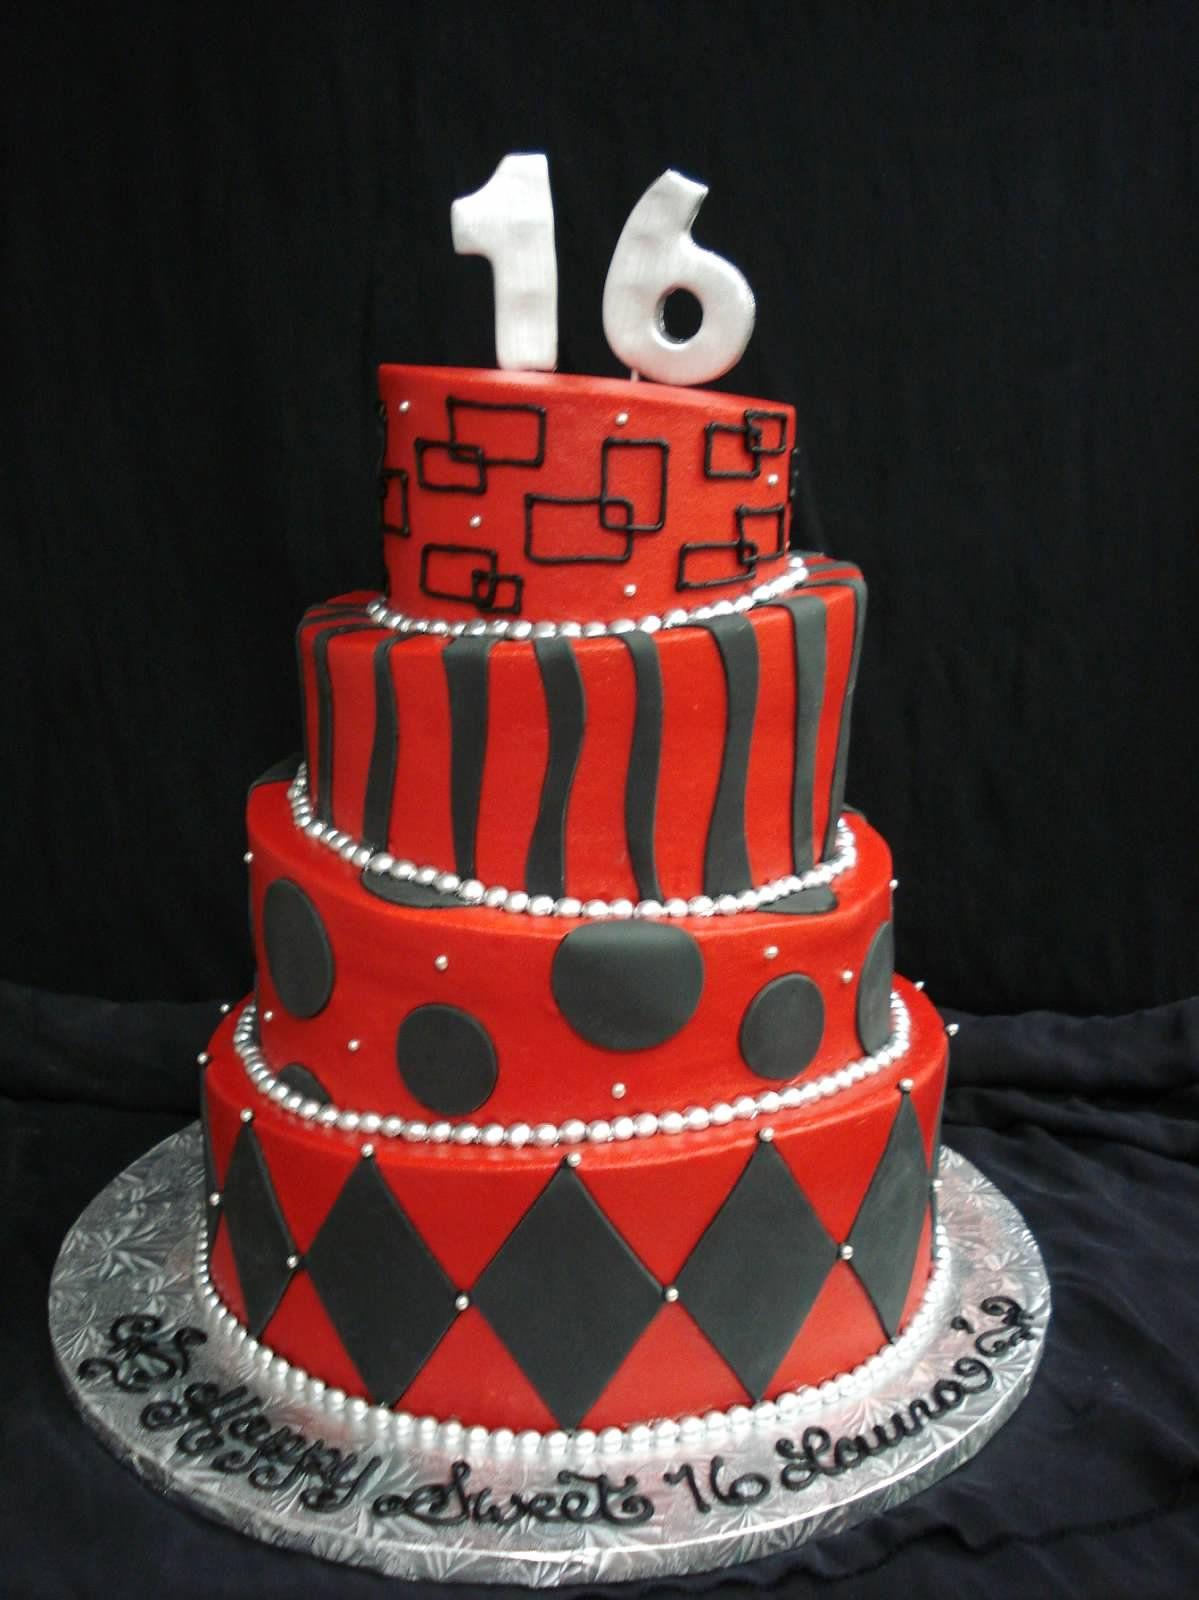 Astonishing Red And Black Themed 16Th Birthday Cake An Ideal Fit For Boys And Funny Birthday Cards Online Bapapcheapnameinfo